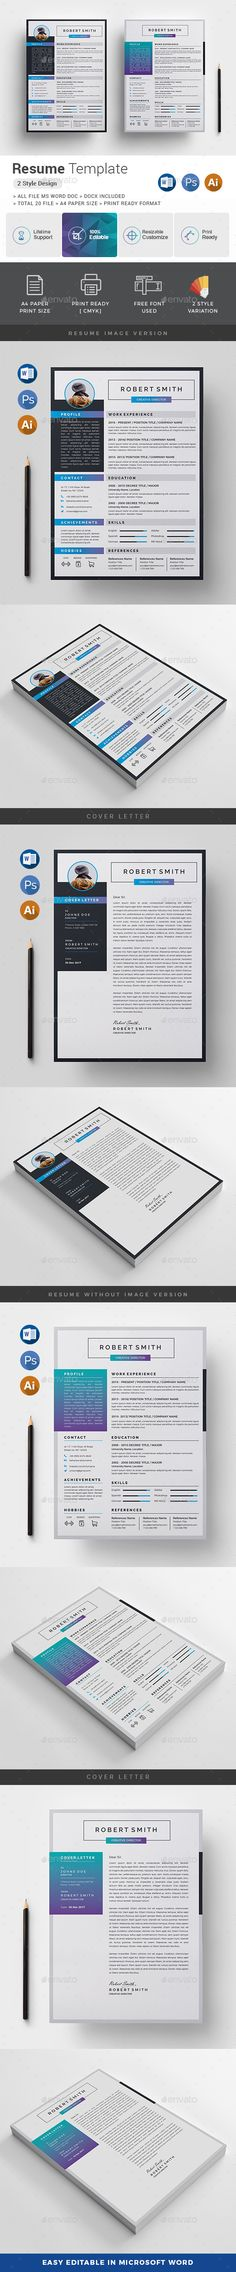 Resume Template, Microsoft word and Modern resume template - resume paper size